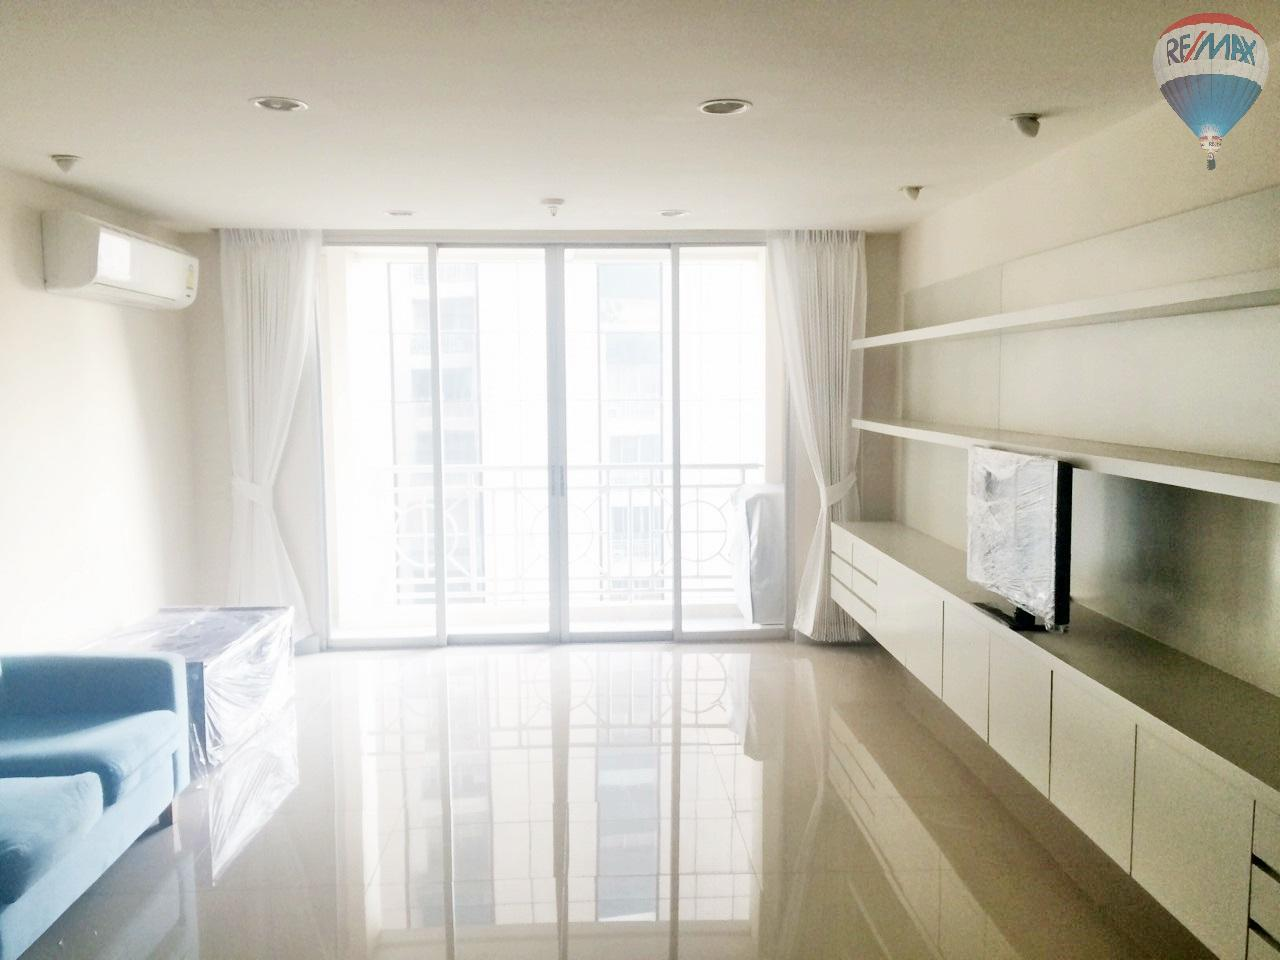 RE/MAX Properties Agency's 2 Bedroom 86 sq.m. for Rent at Asoke Place 10